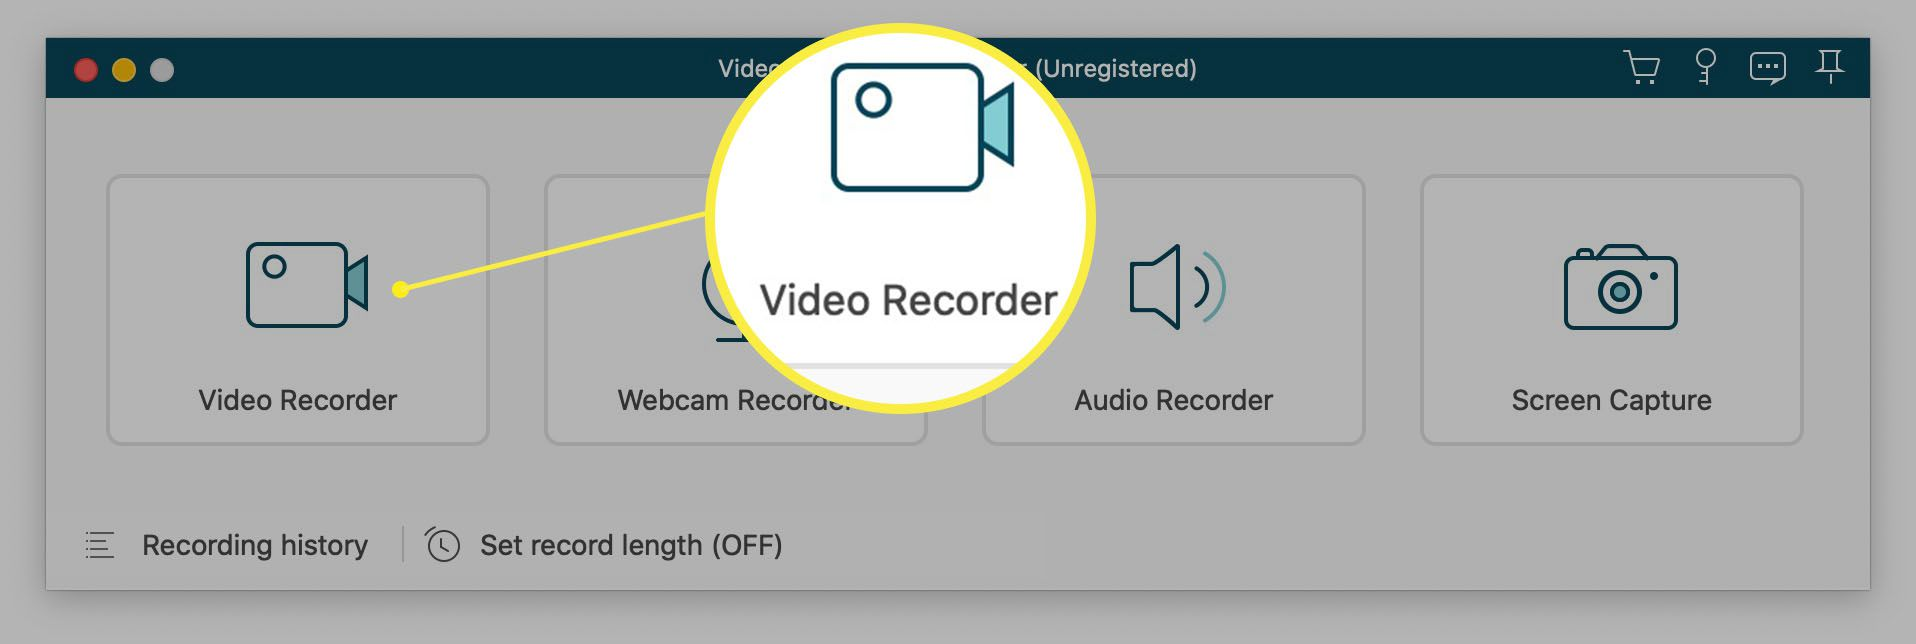 VideoSolo app with Video Recorder option highlighted